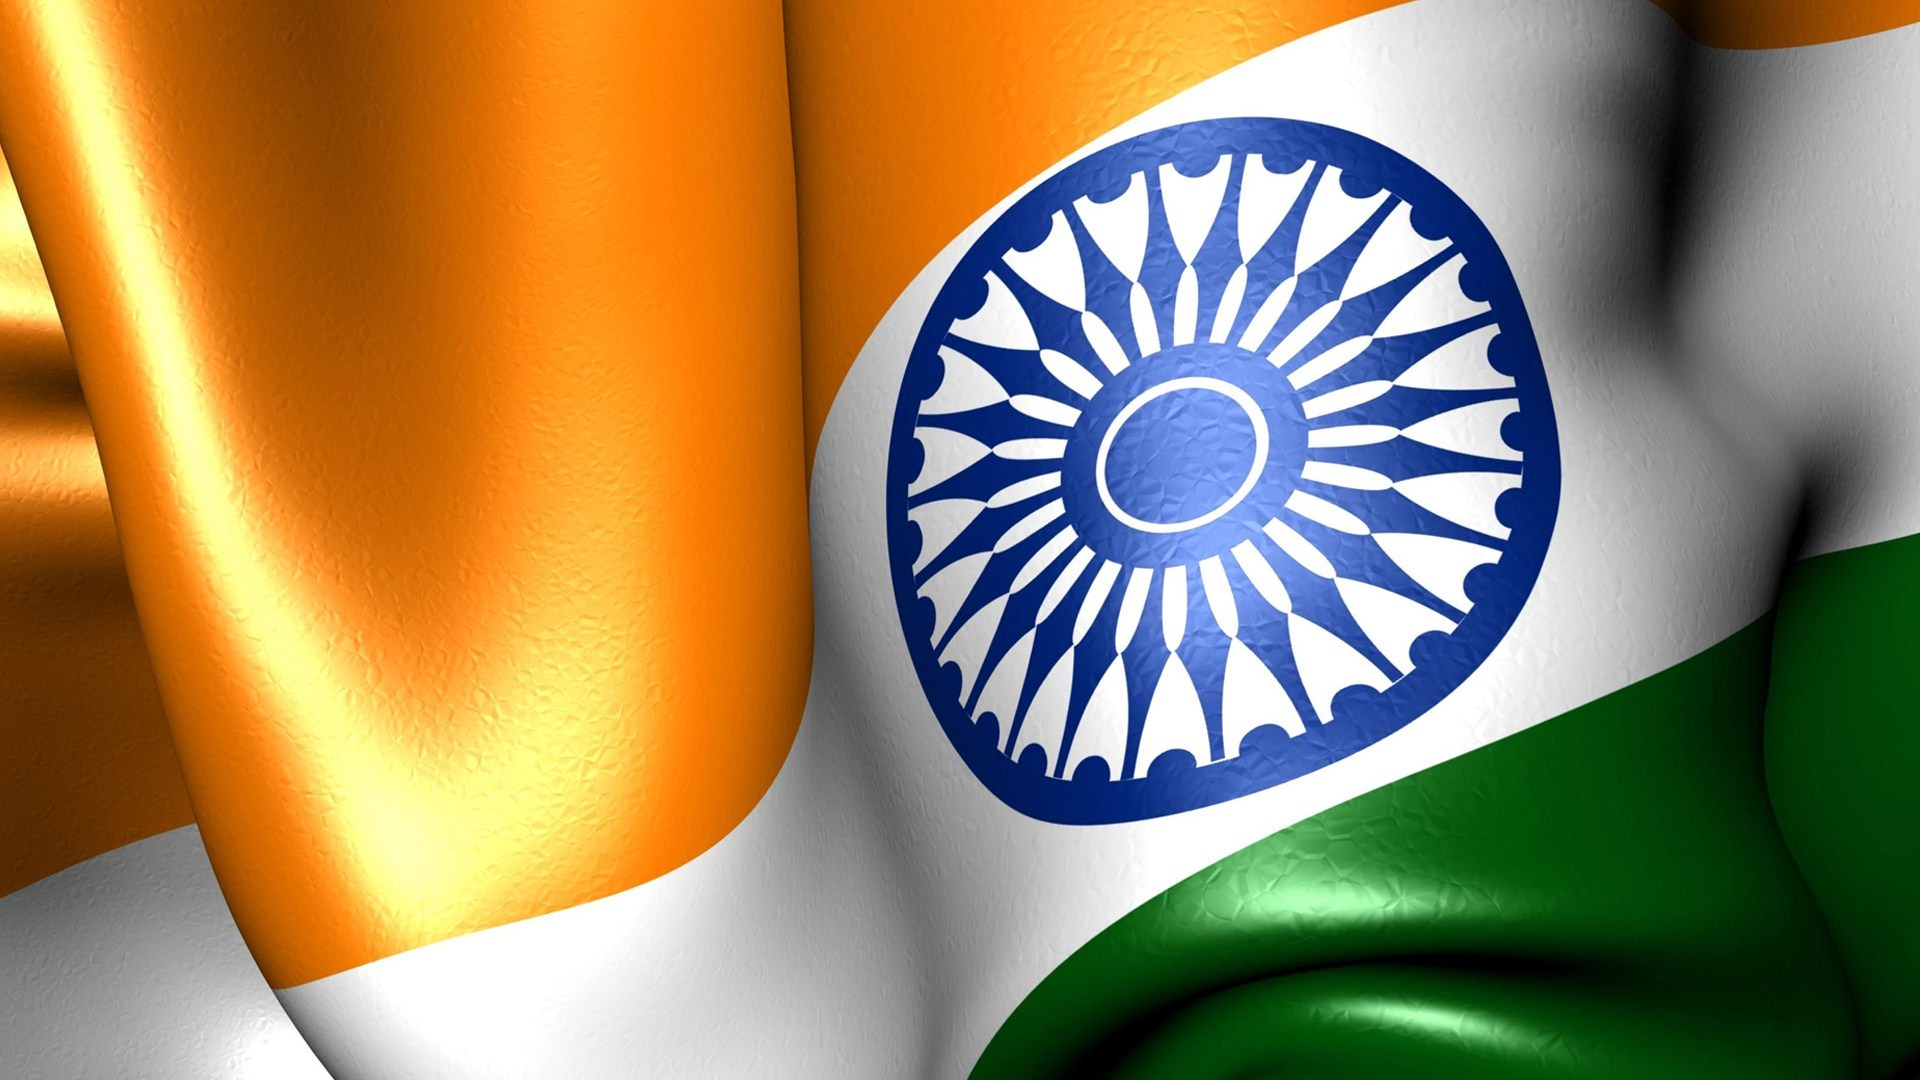 Indian Flag Images And Hd Wallpapers Atulhost